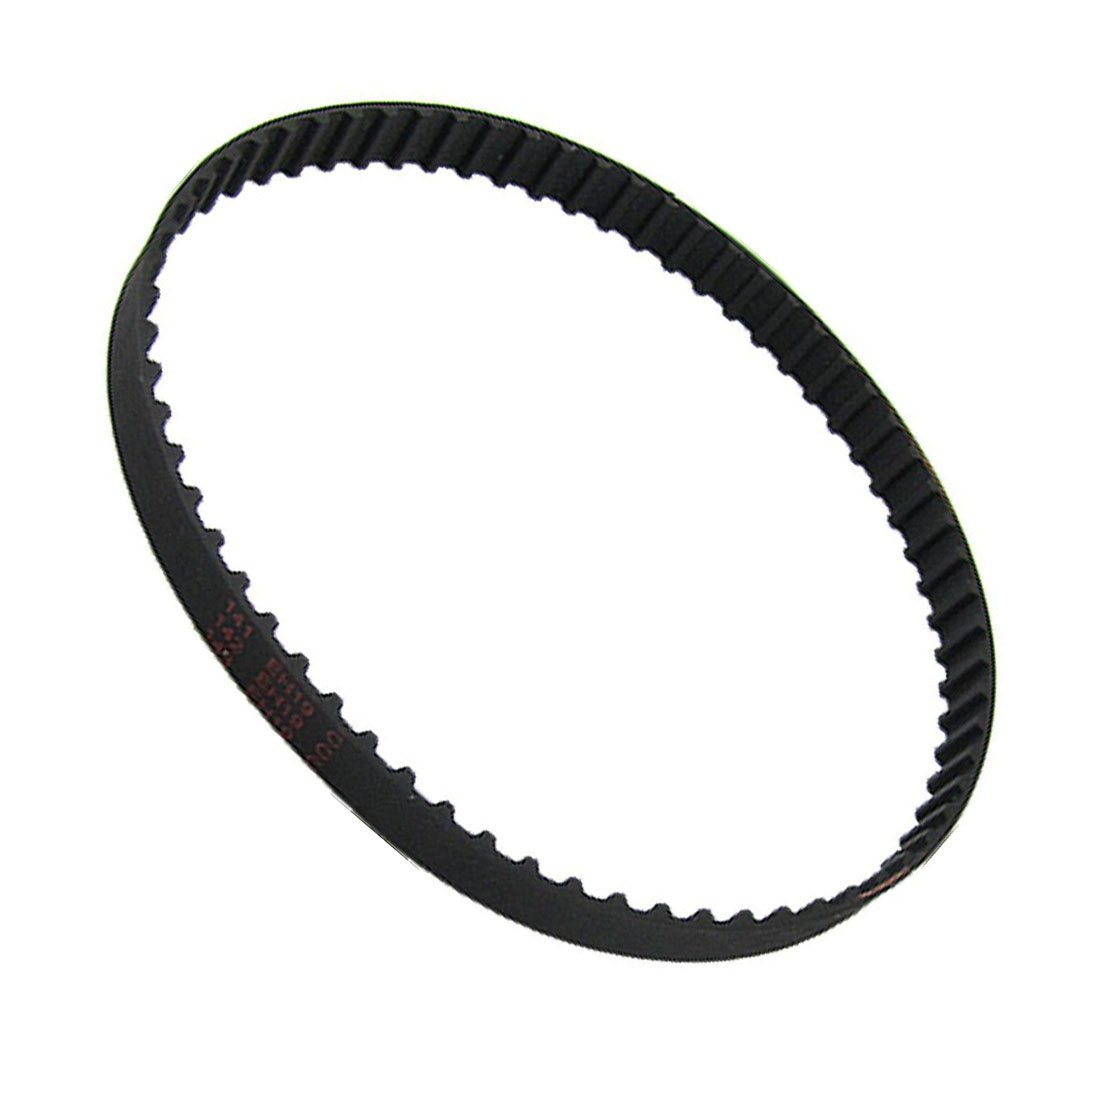 Cikuso 130XL 5.08mm Pitch 10mm Width 65 Teeth Black Synchronous Timing Belt